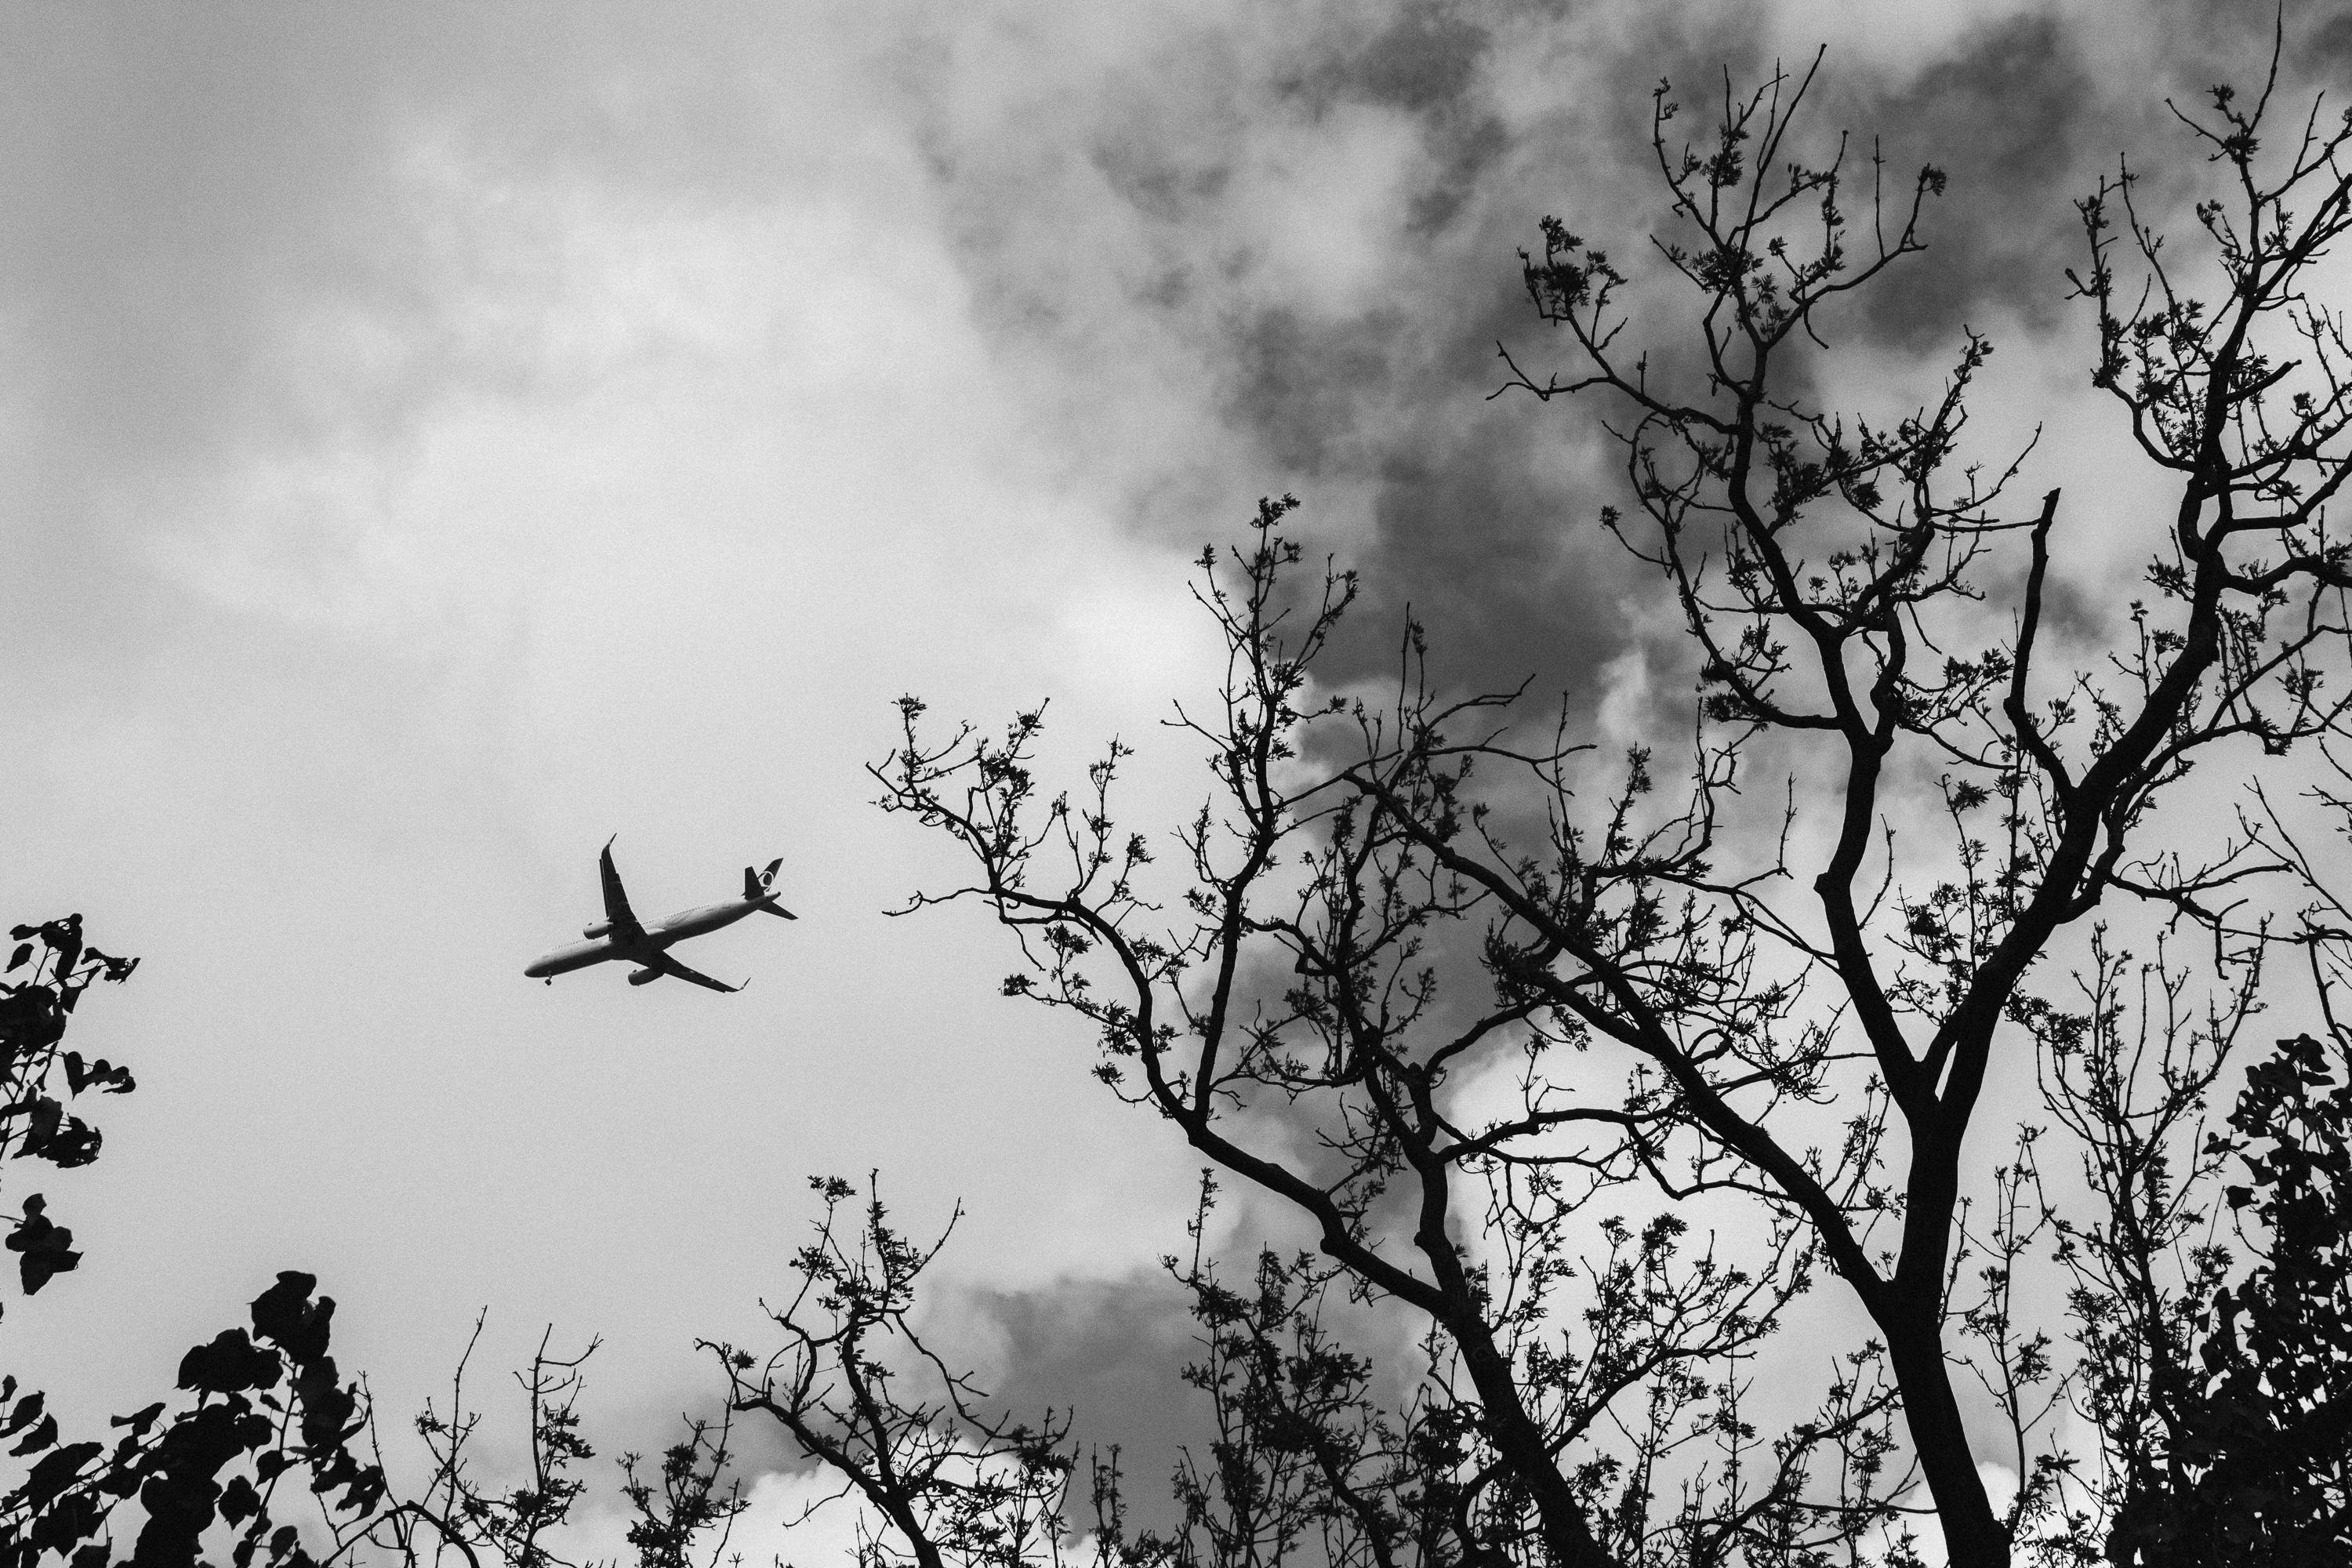 Black-and-White Photography of Airplane